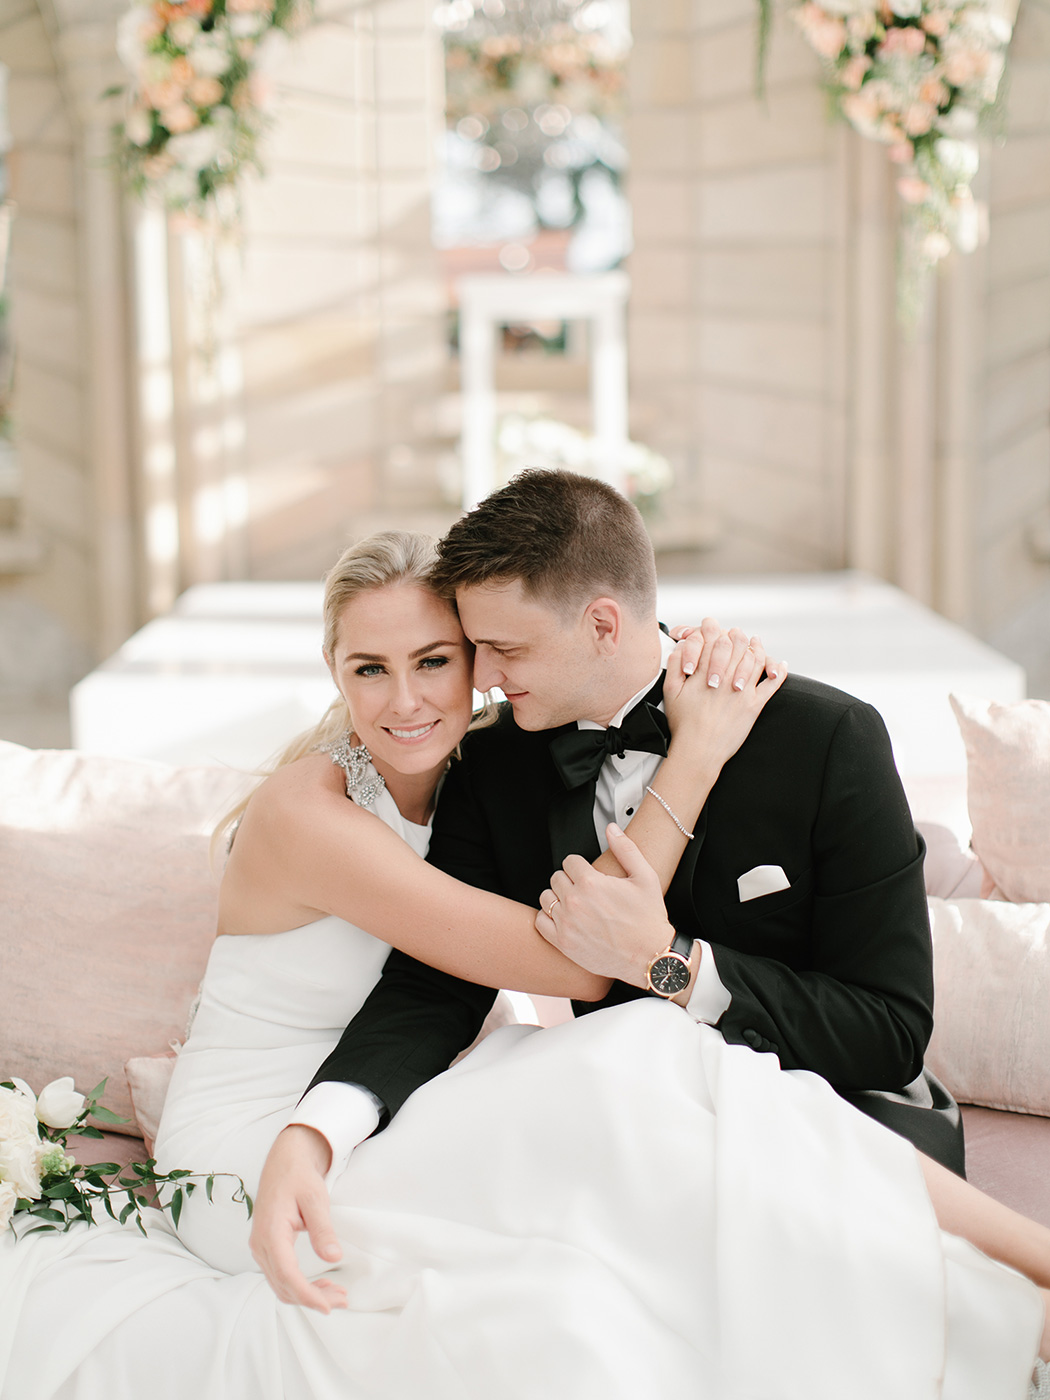 Beautiful Wedding Couple | Rensche Mari Photography